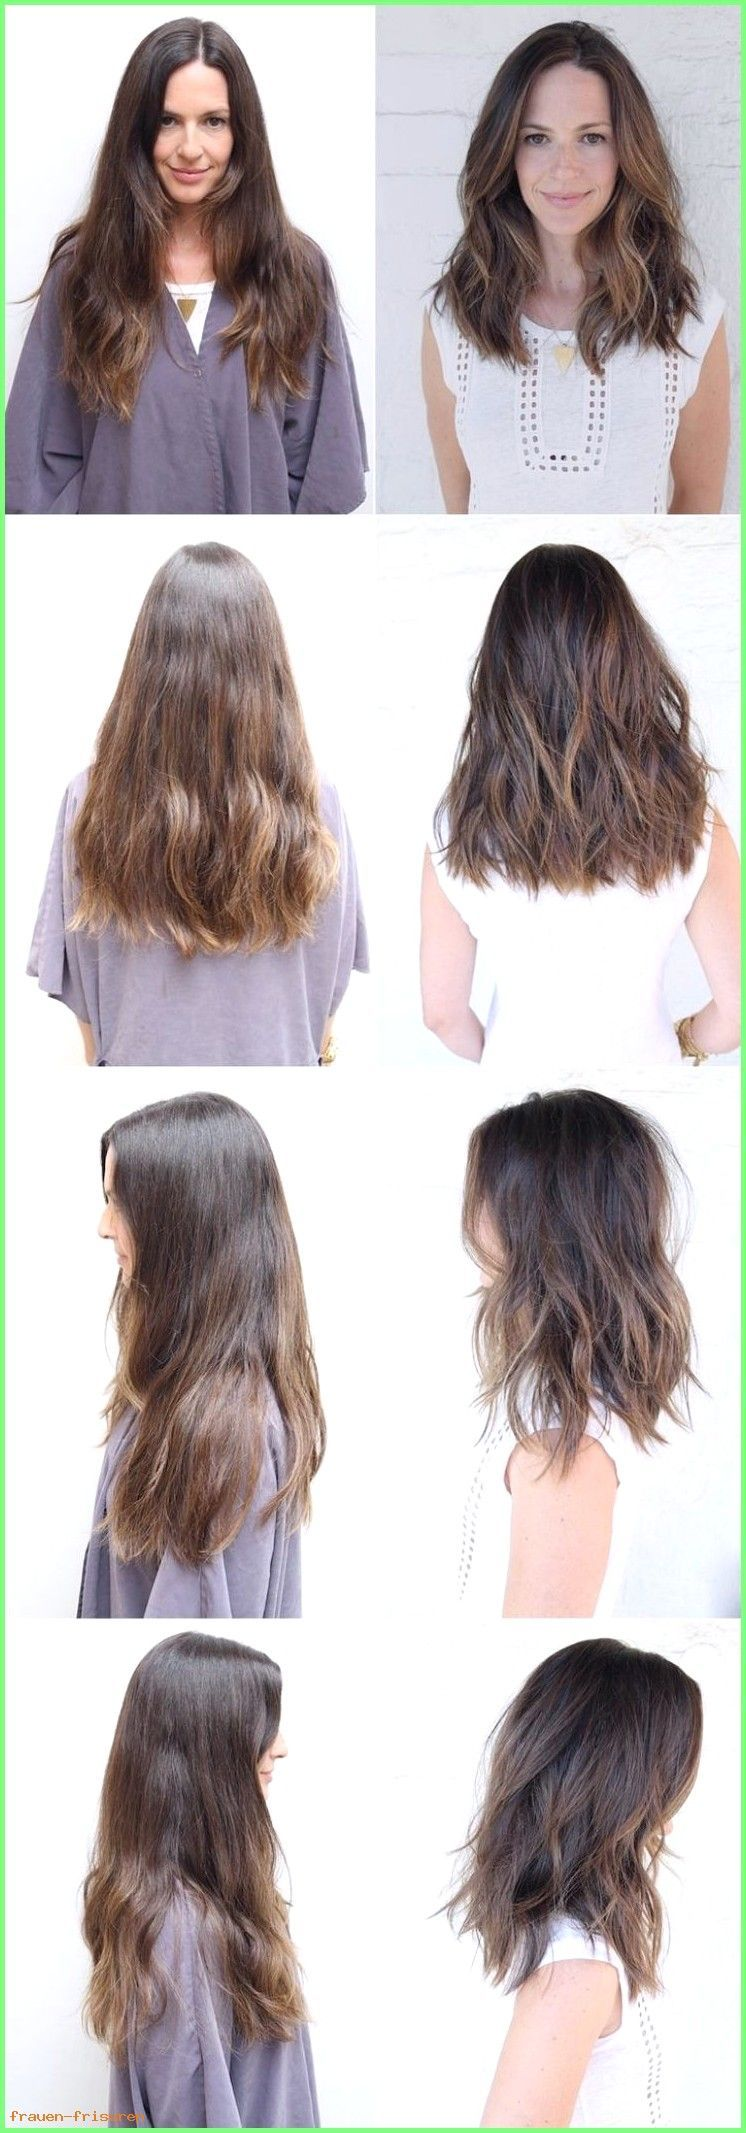 Tiered Hairstyles Models 2019 for Women ... - -